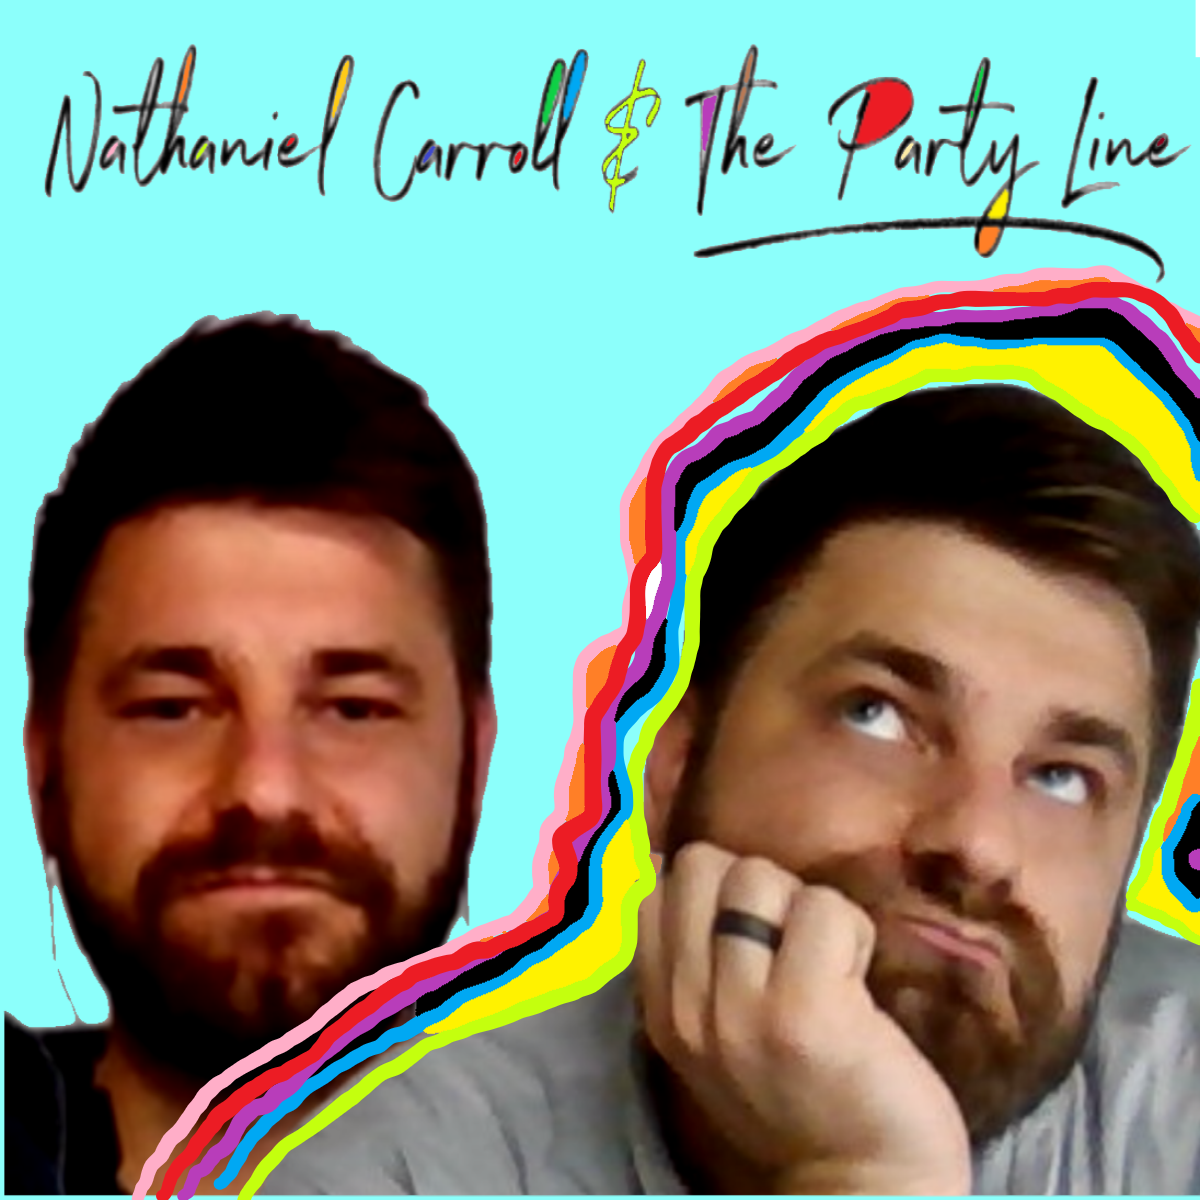 Nathaniel Carroll & the Party Line